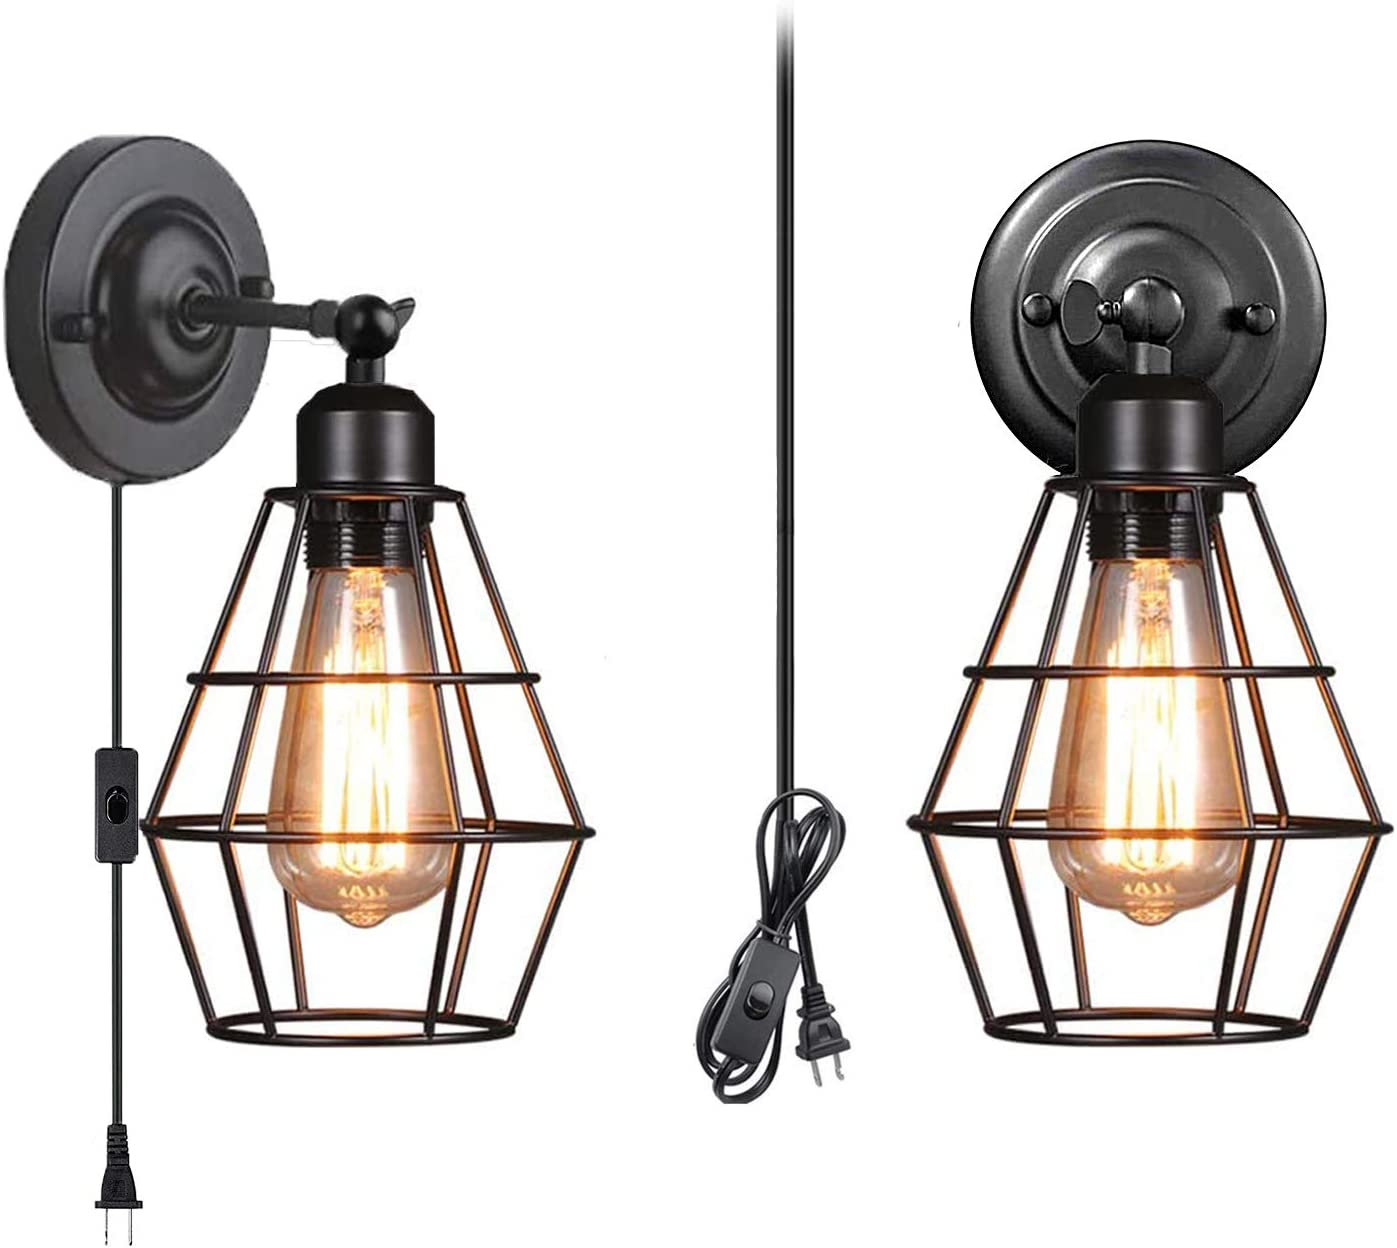 Wall Sconce 2 Pack Pendant Brand Cheap Sale Venue Plug Industrial Lamp Super intense SALE Light with